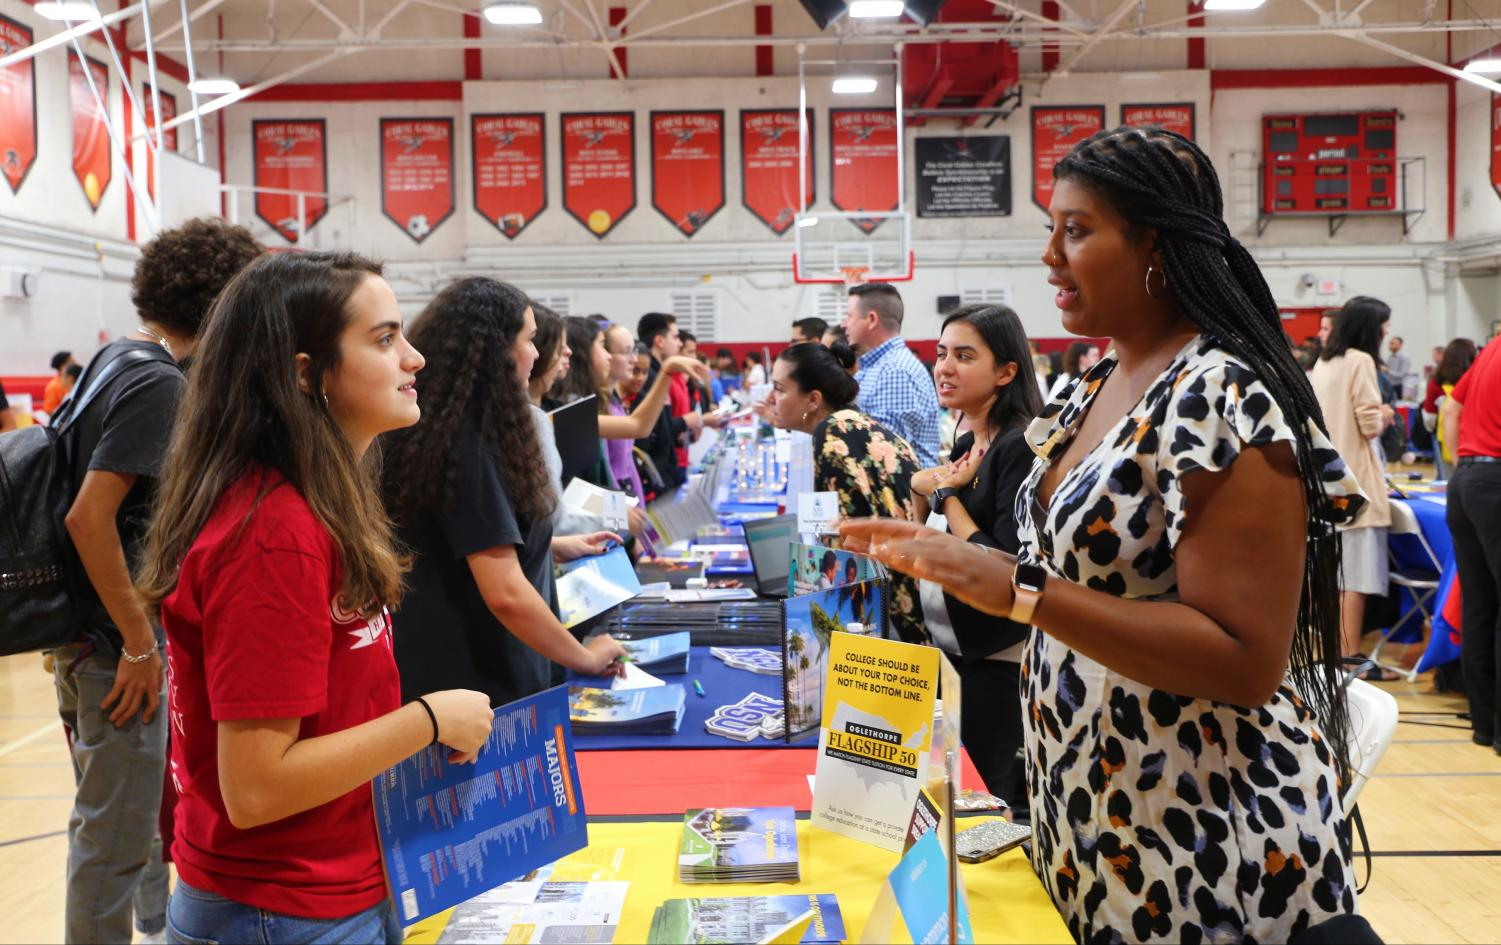 Juniors and Seniors attended the College Fair, which included over 50 college representatives from across the United States.